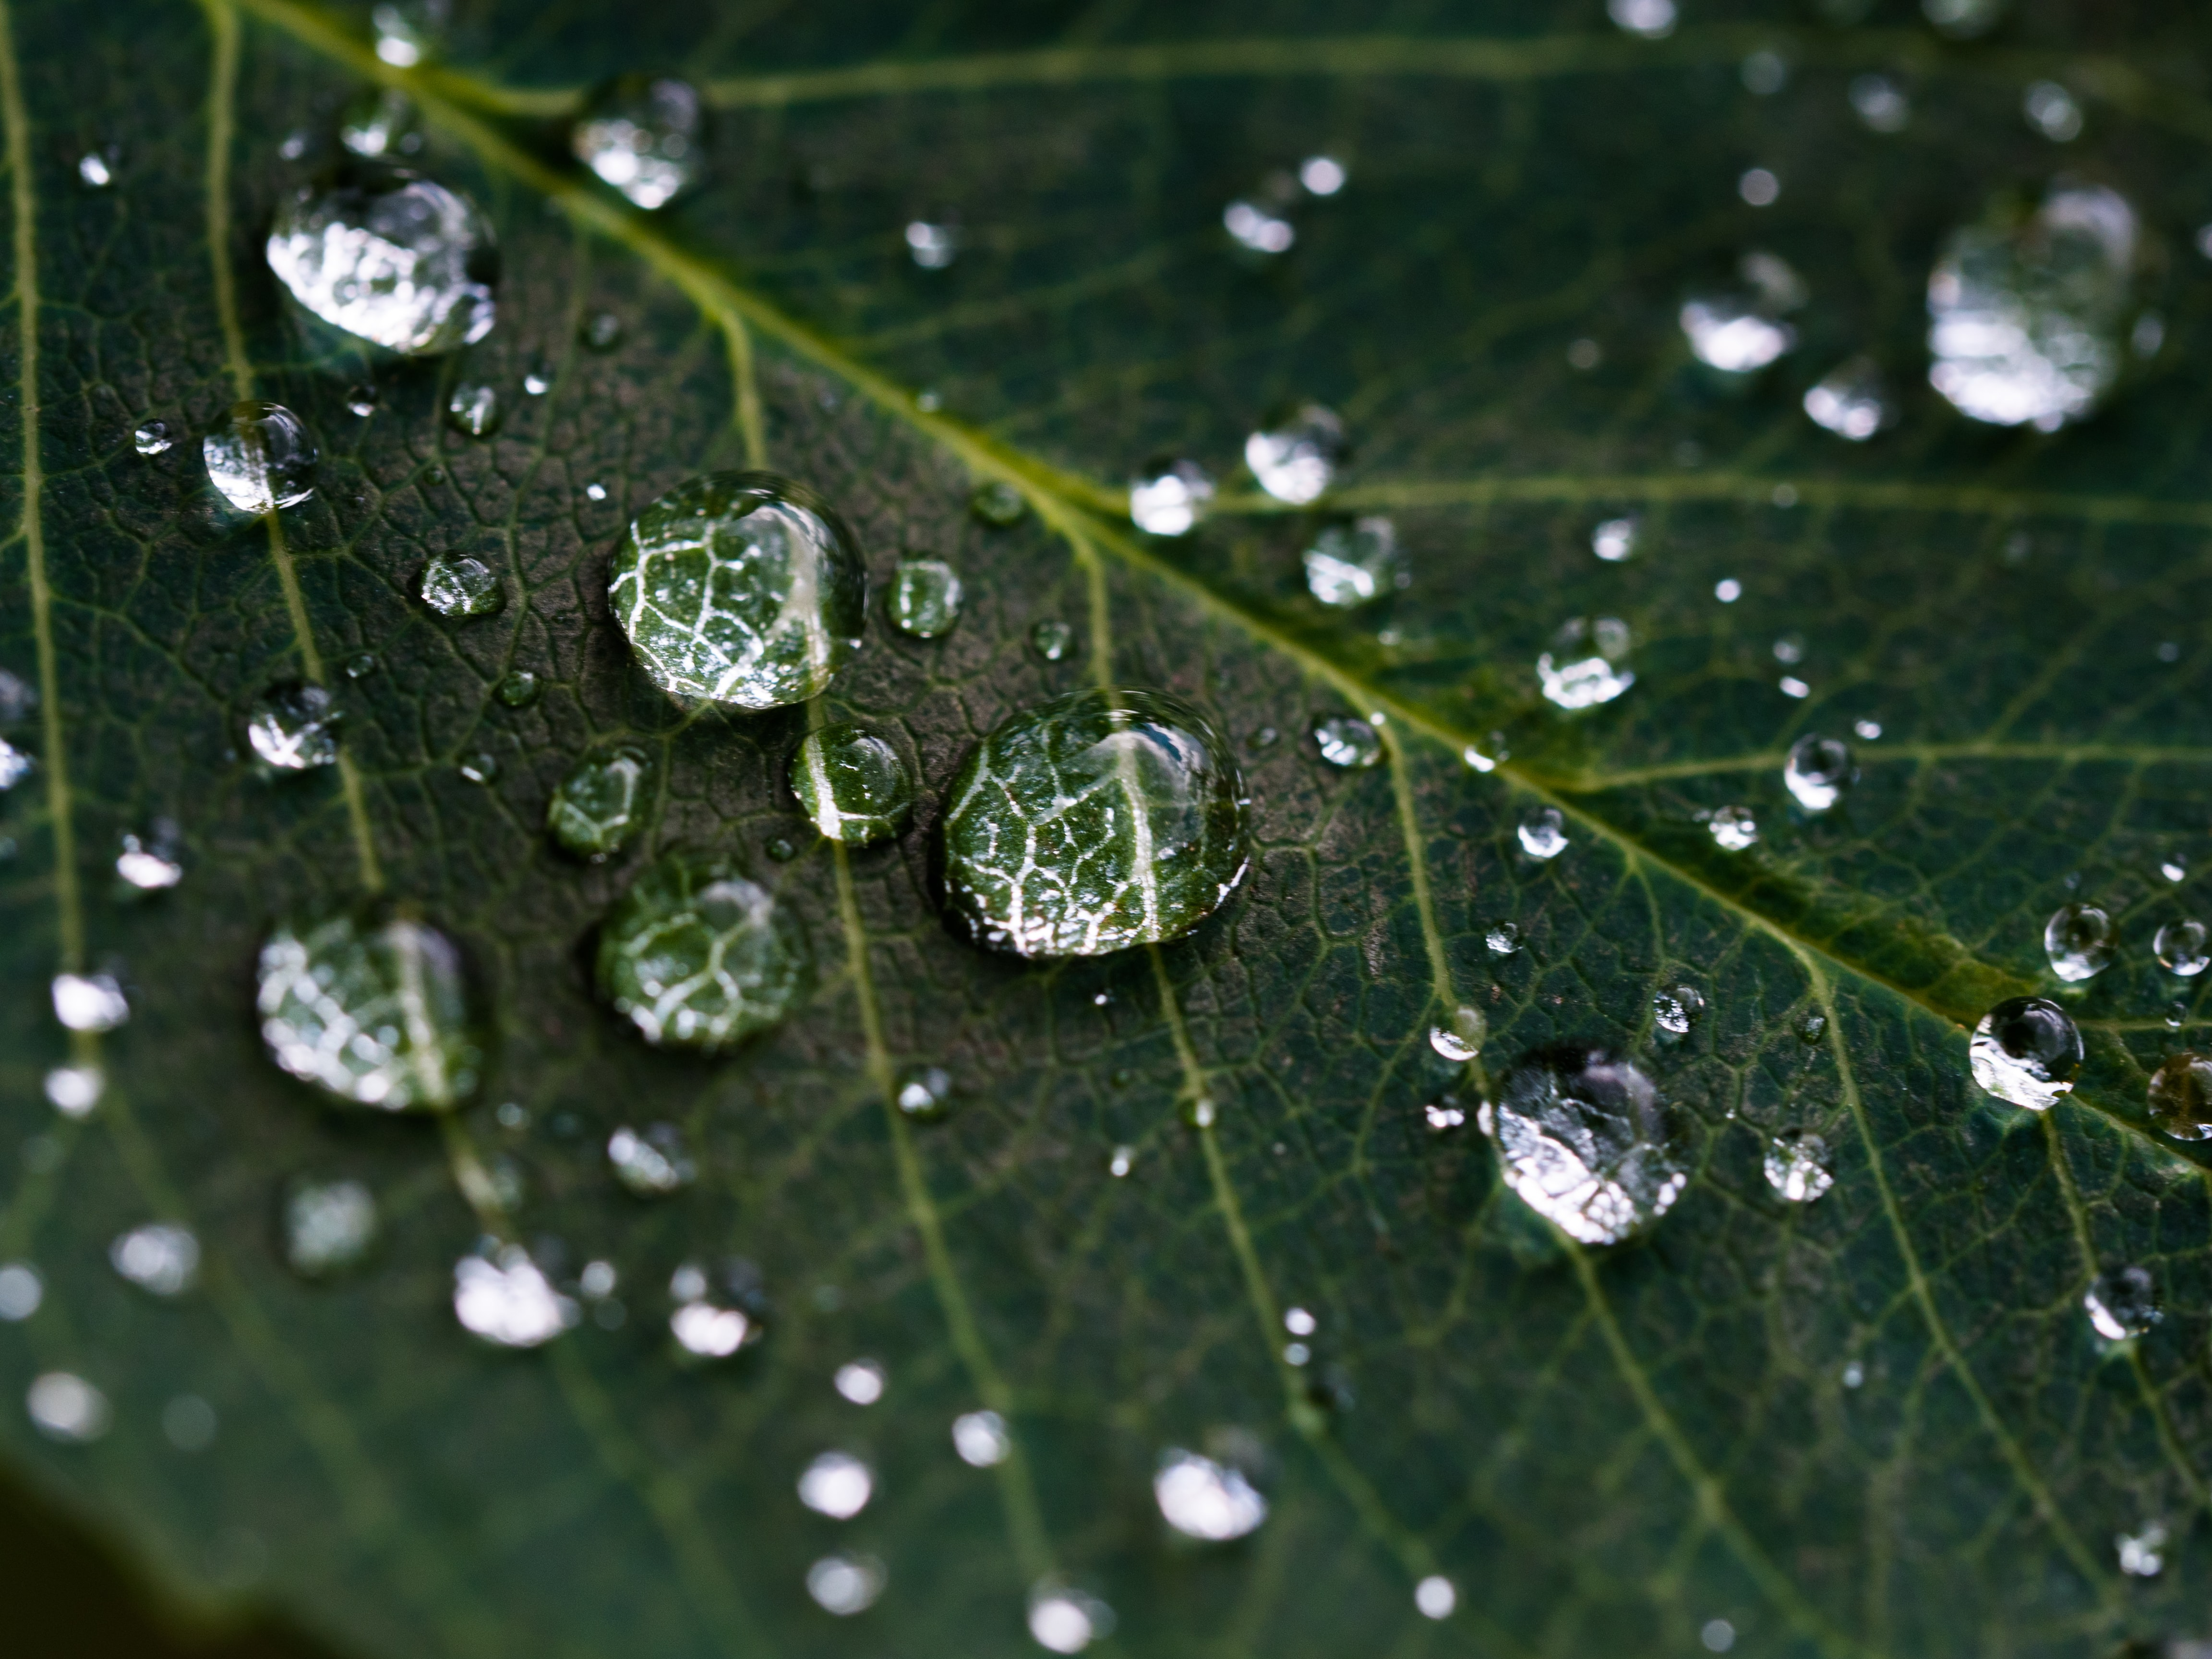 A macro shot of droplets of water on the veiny surface of a dark green leaf